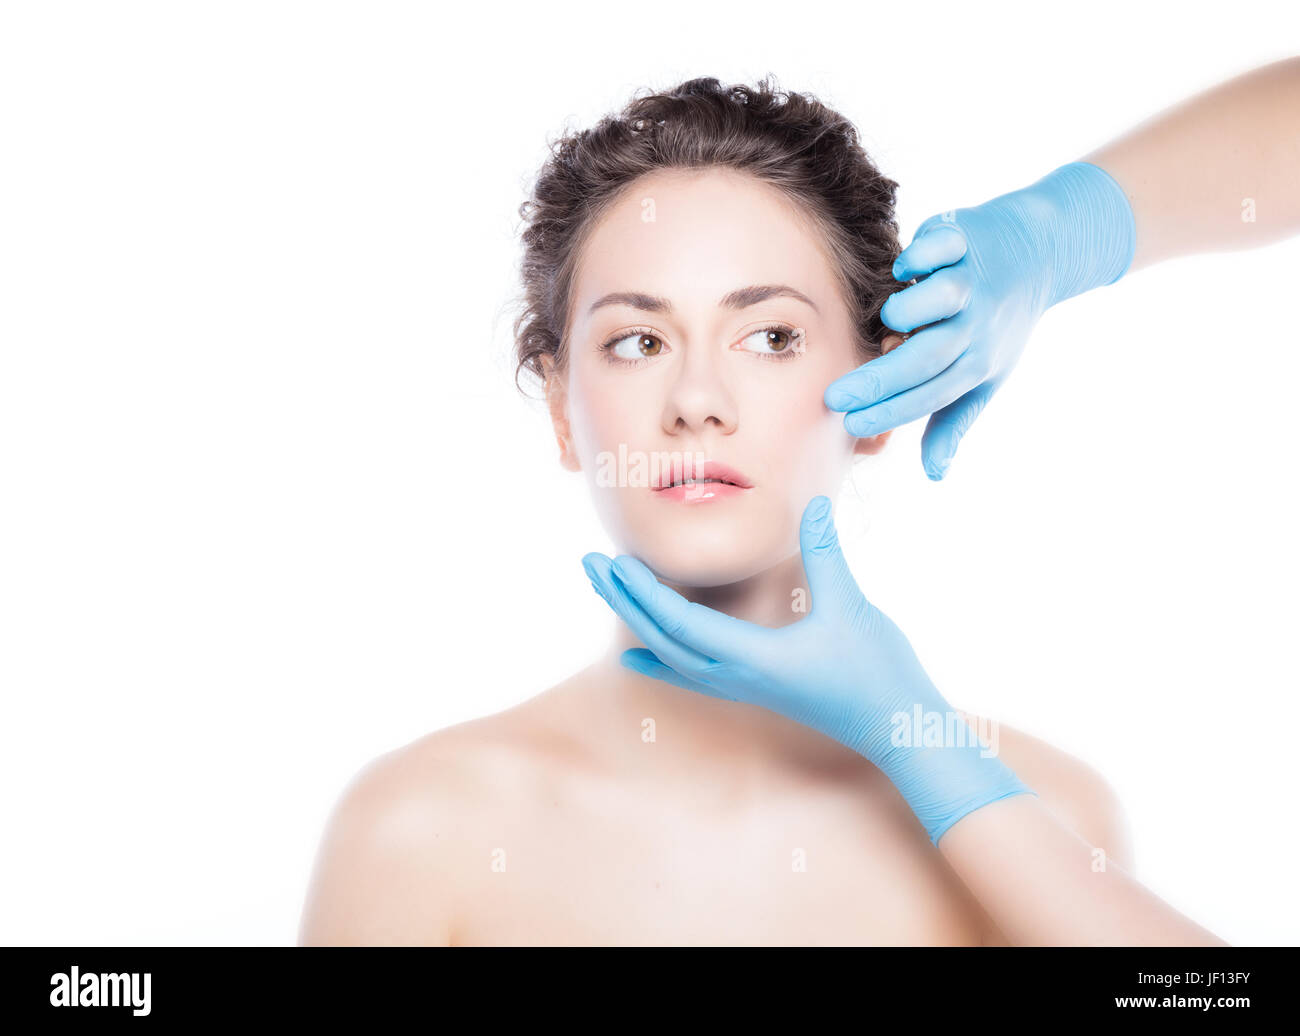 Aesthetic medicine. Young beautiful woman's skin review before treatment. Anti-aging skincare and plastic surgery - Stock Image